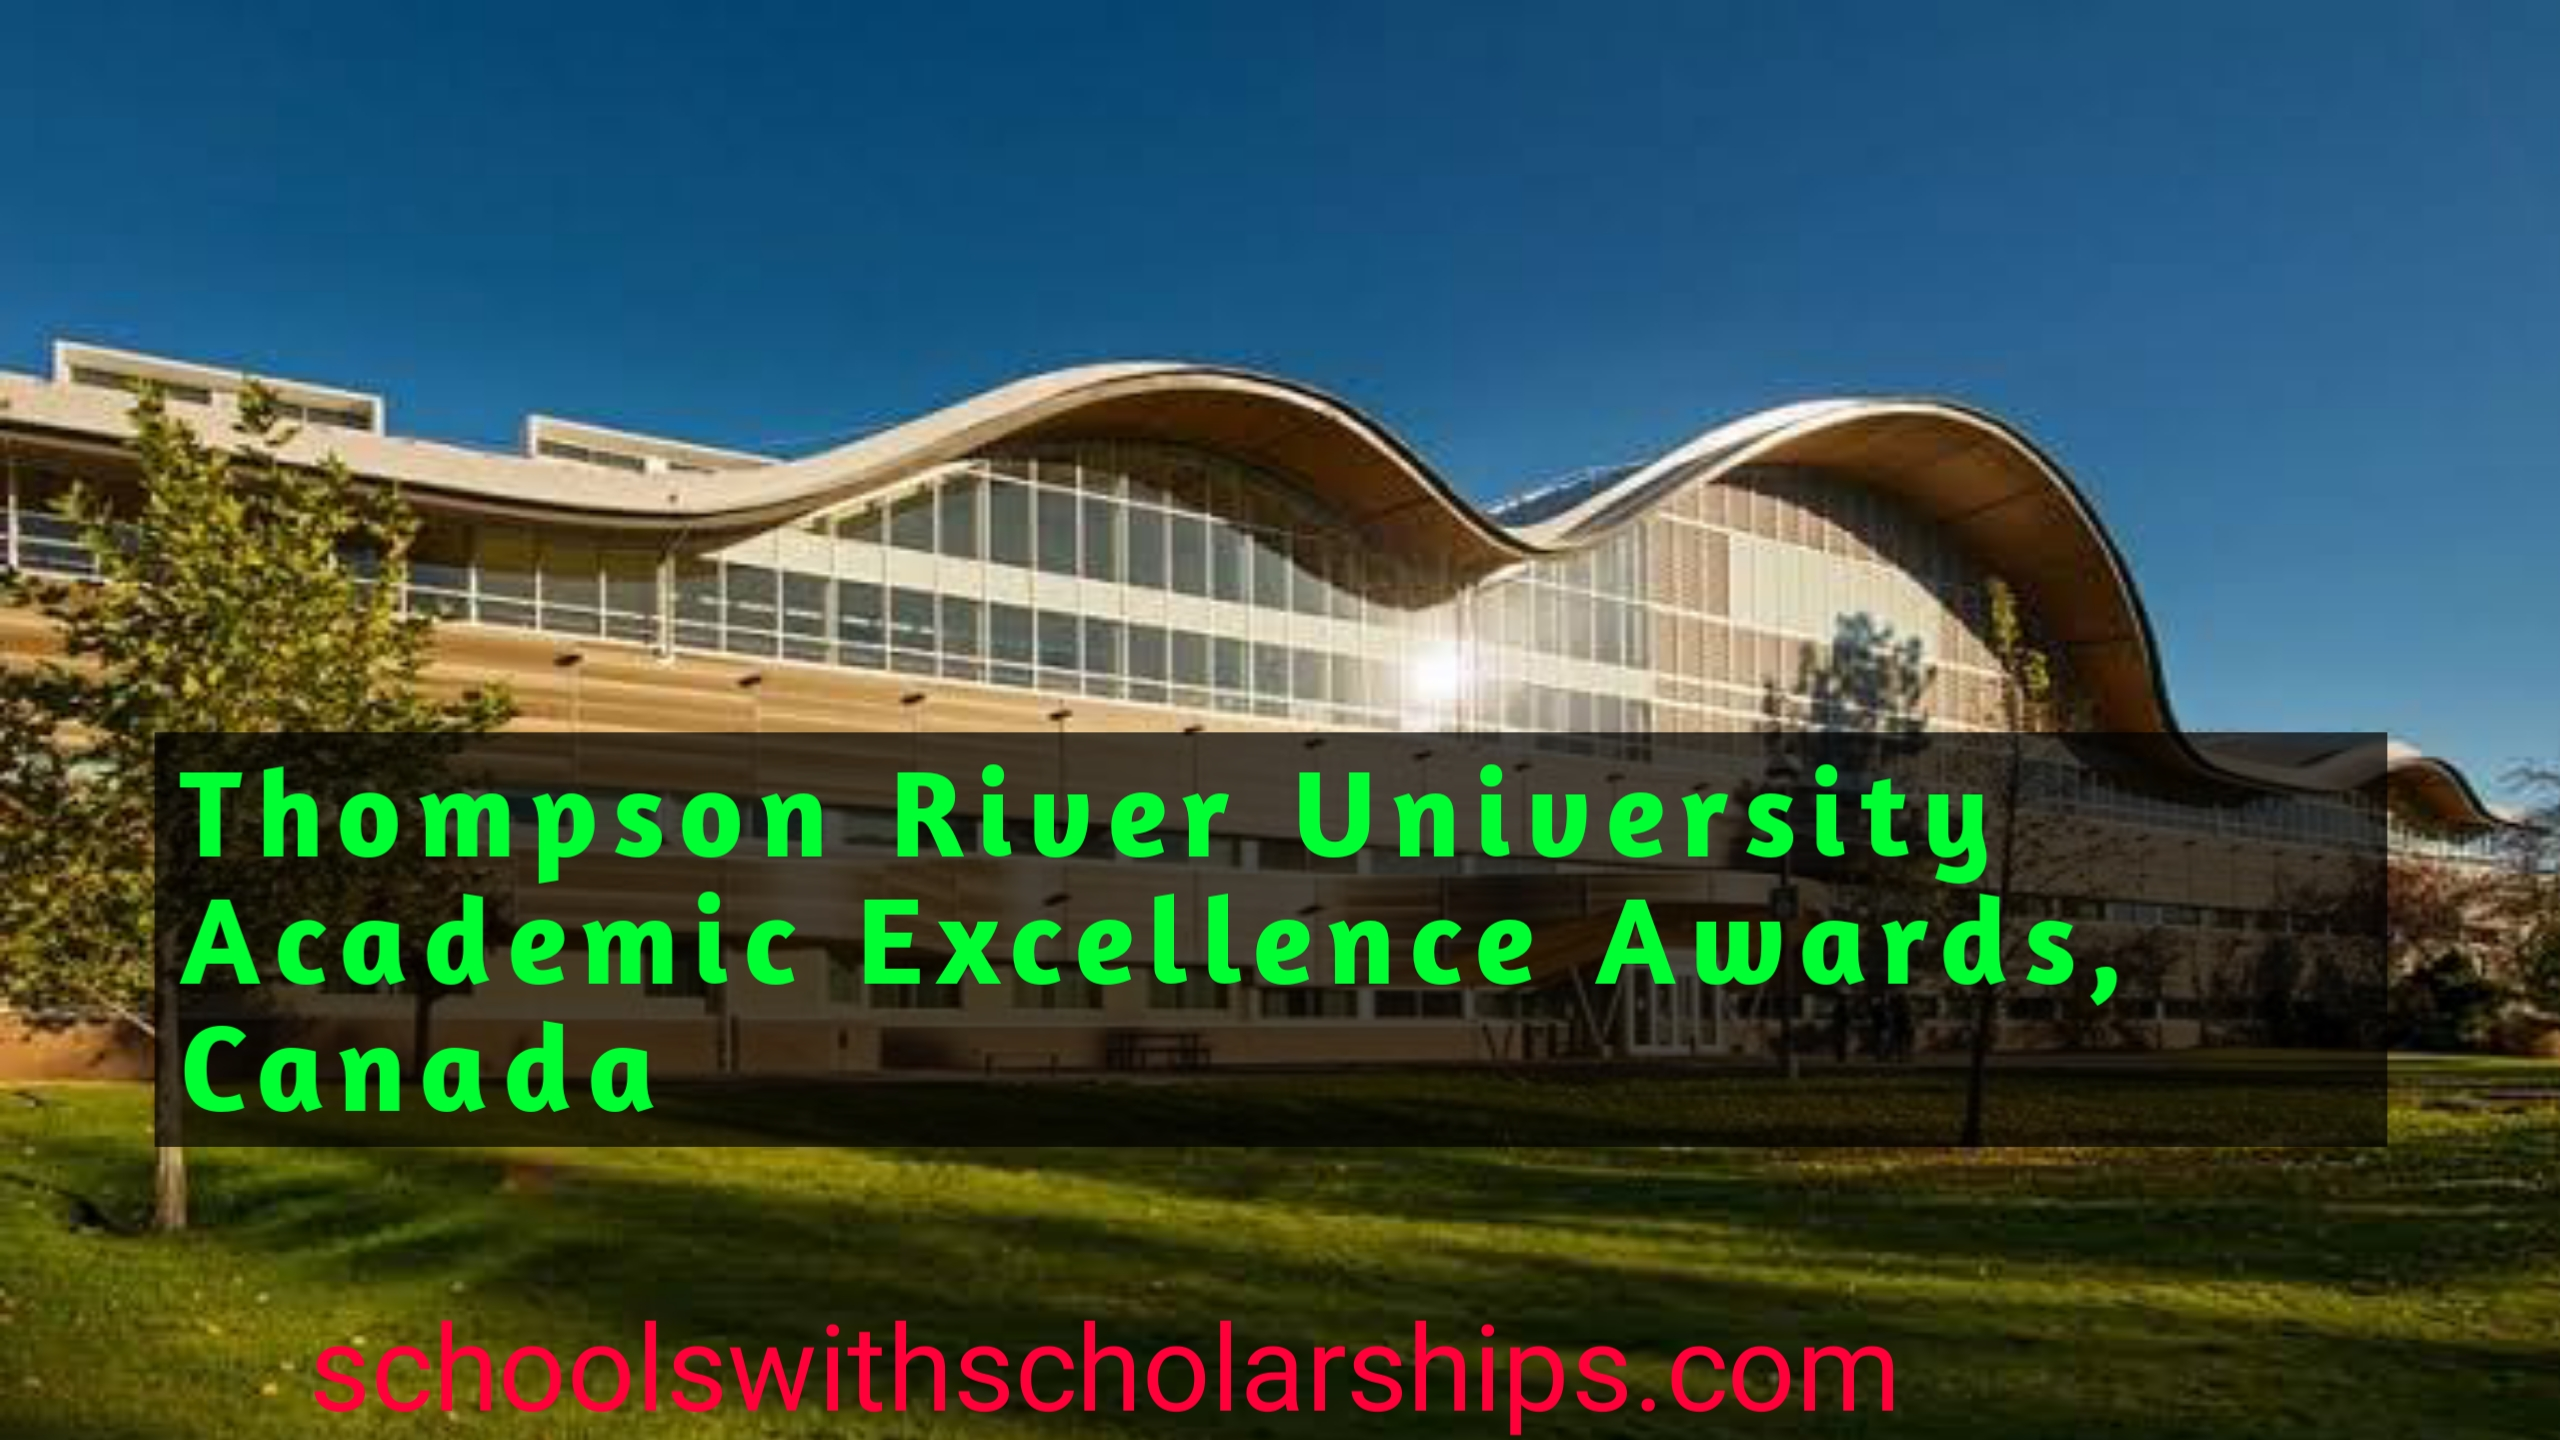 Thompson River University Academic Excellence Awards, Canada